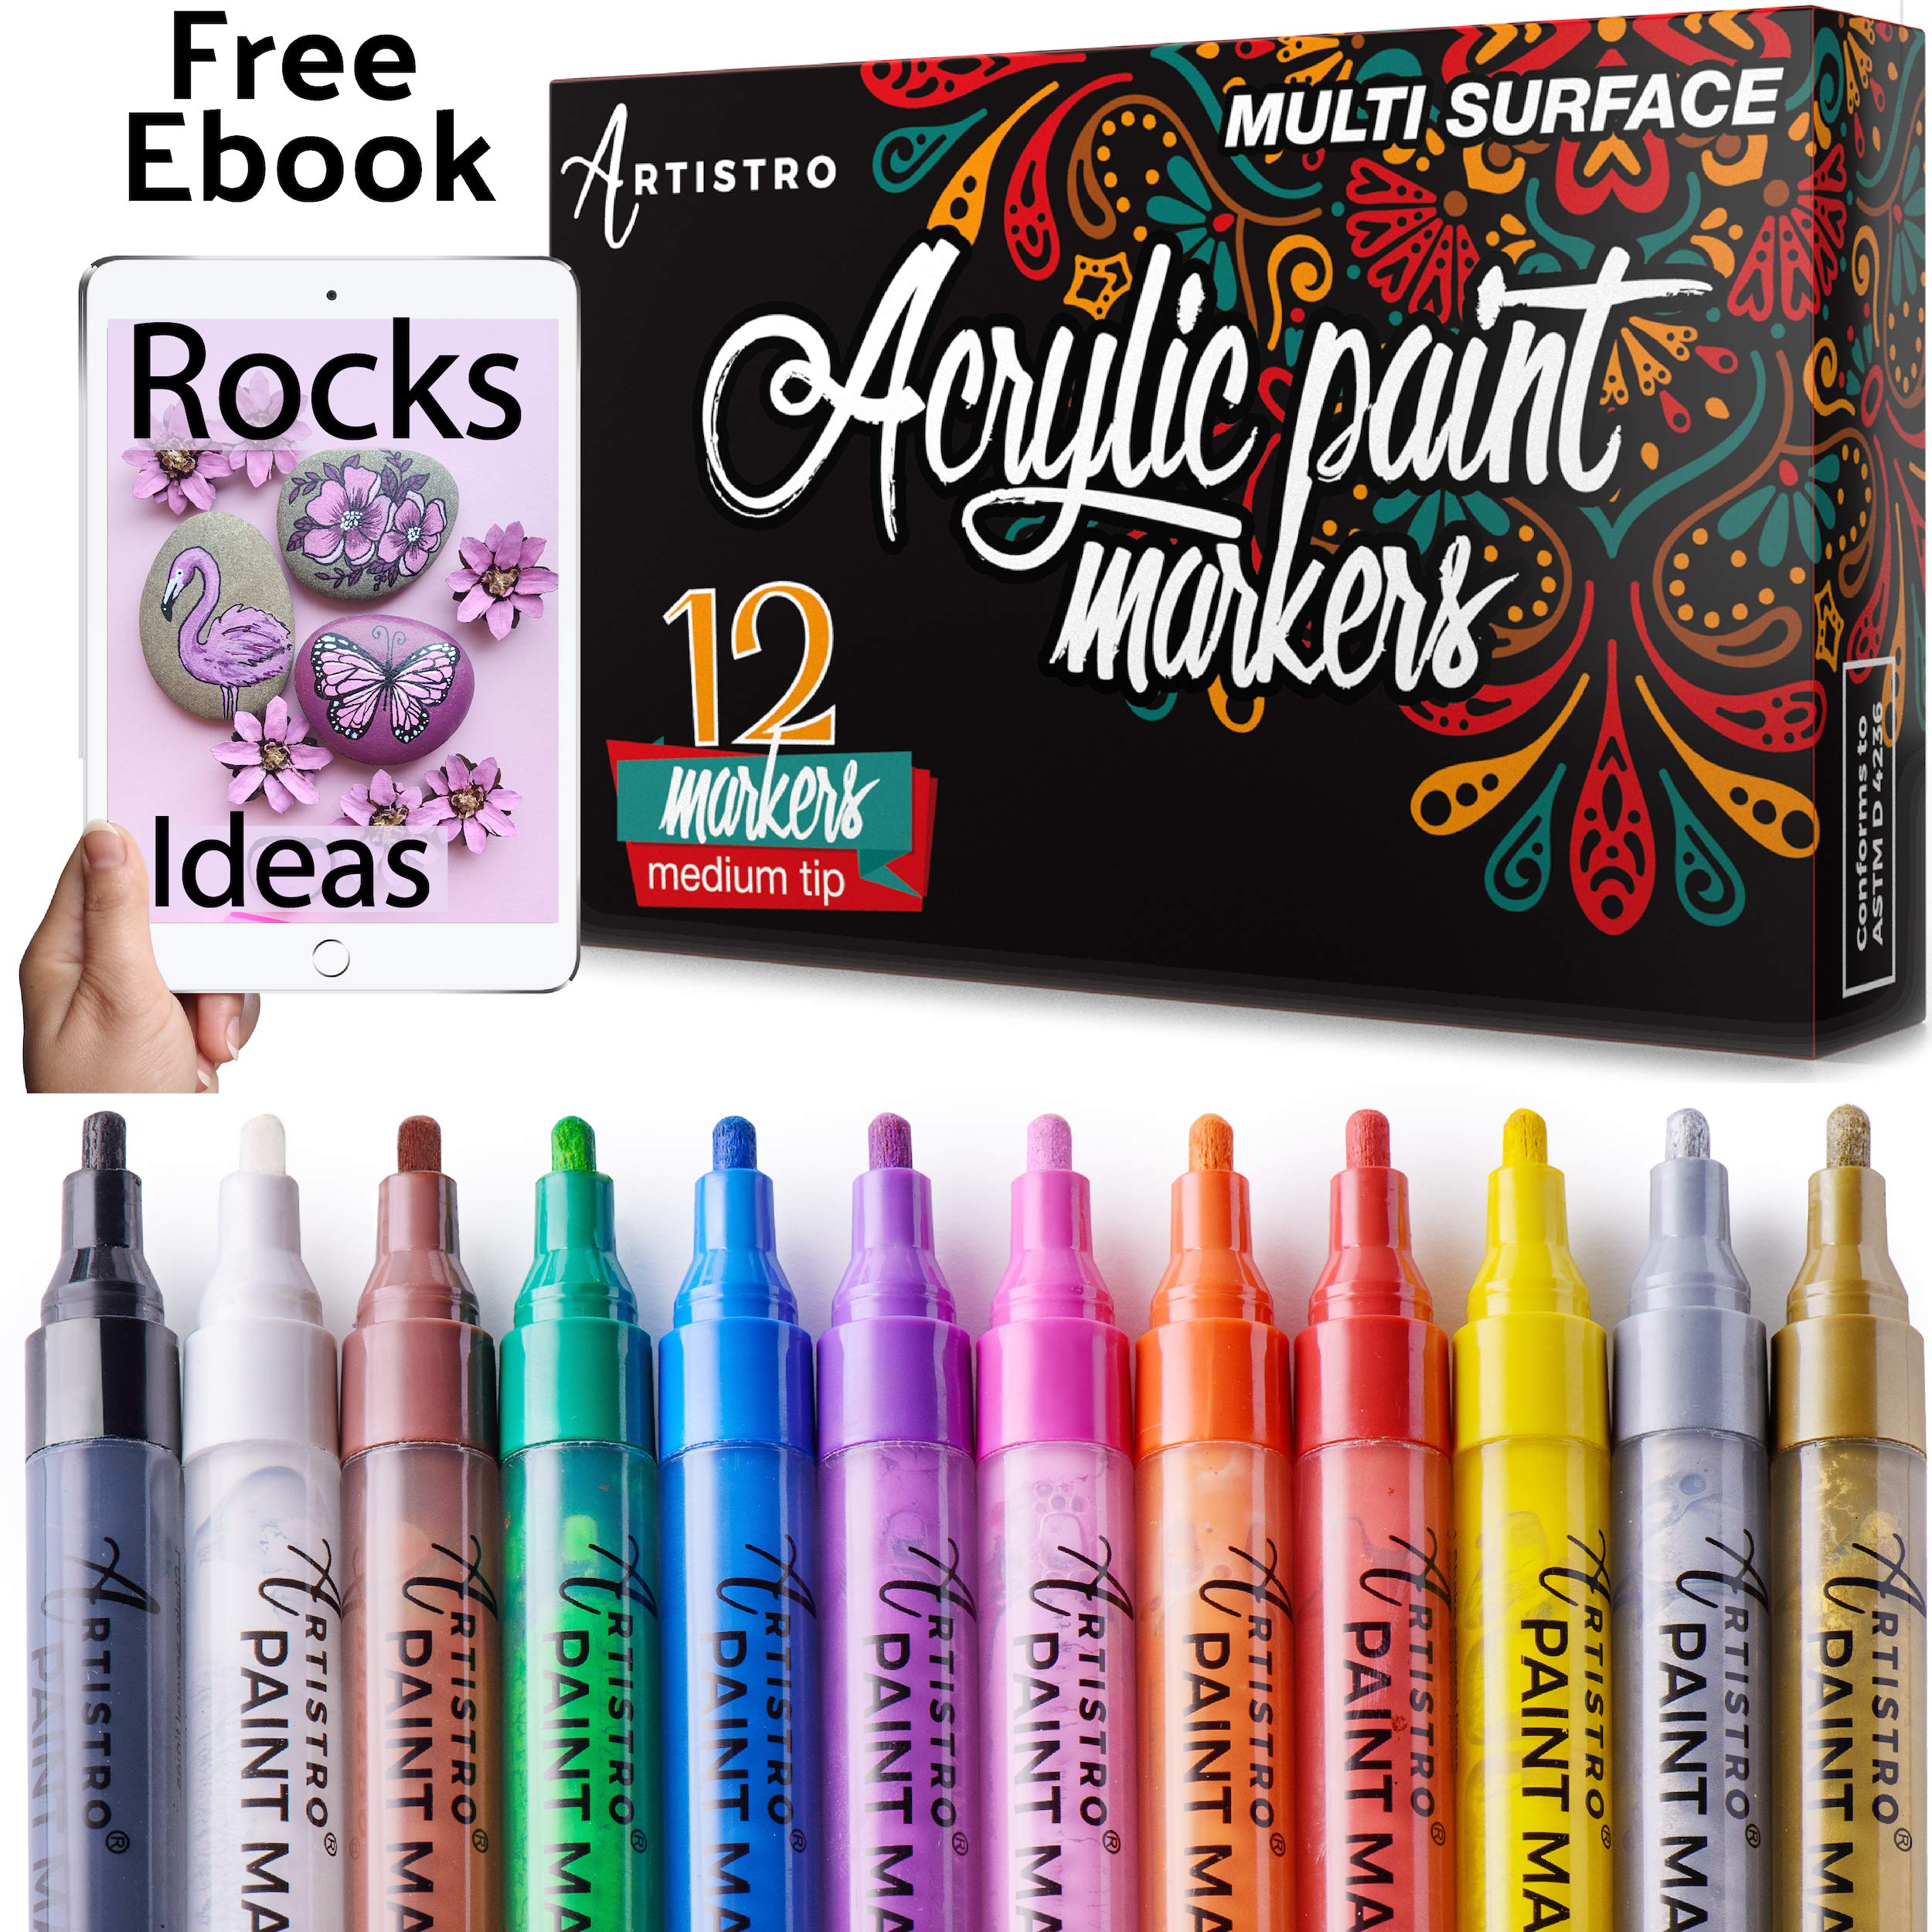 Paint Pens for Rock Painting, Ceramic, Porcelain, Glass, Wood, Fabric, Canvas. Set of 12 Acrylic Paint Markers Medium Tip by ARTISTRO